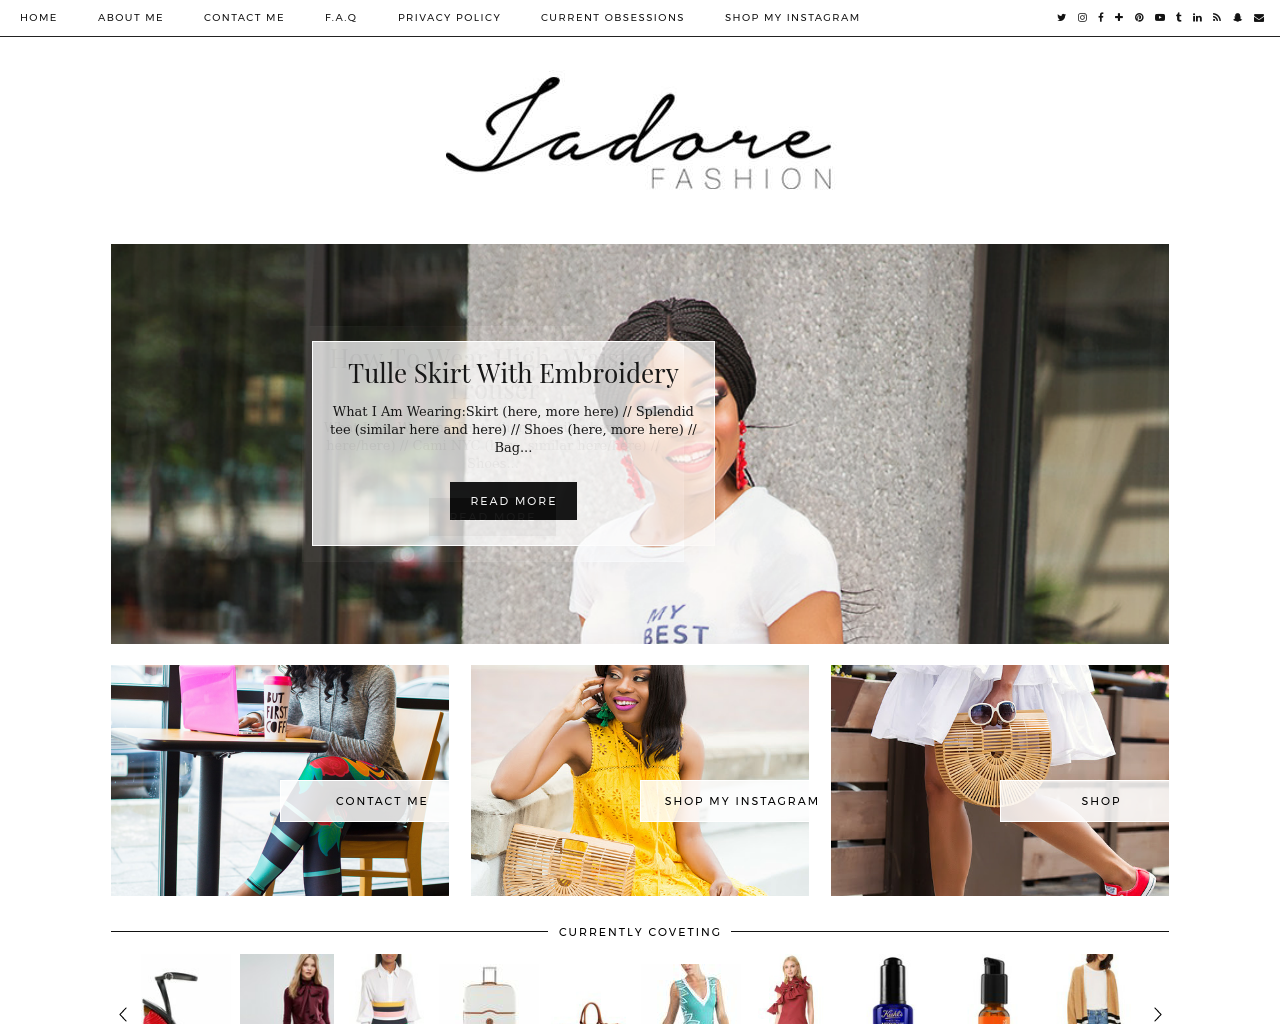 Jadore-Fashion-Advertising-Reviews-Pricing